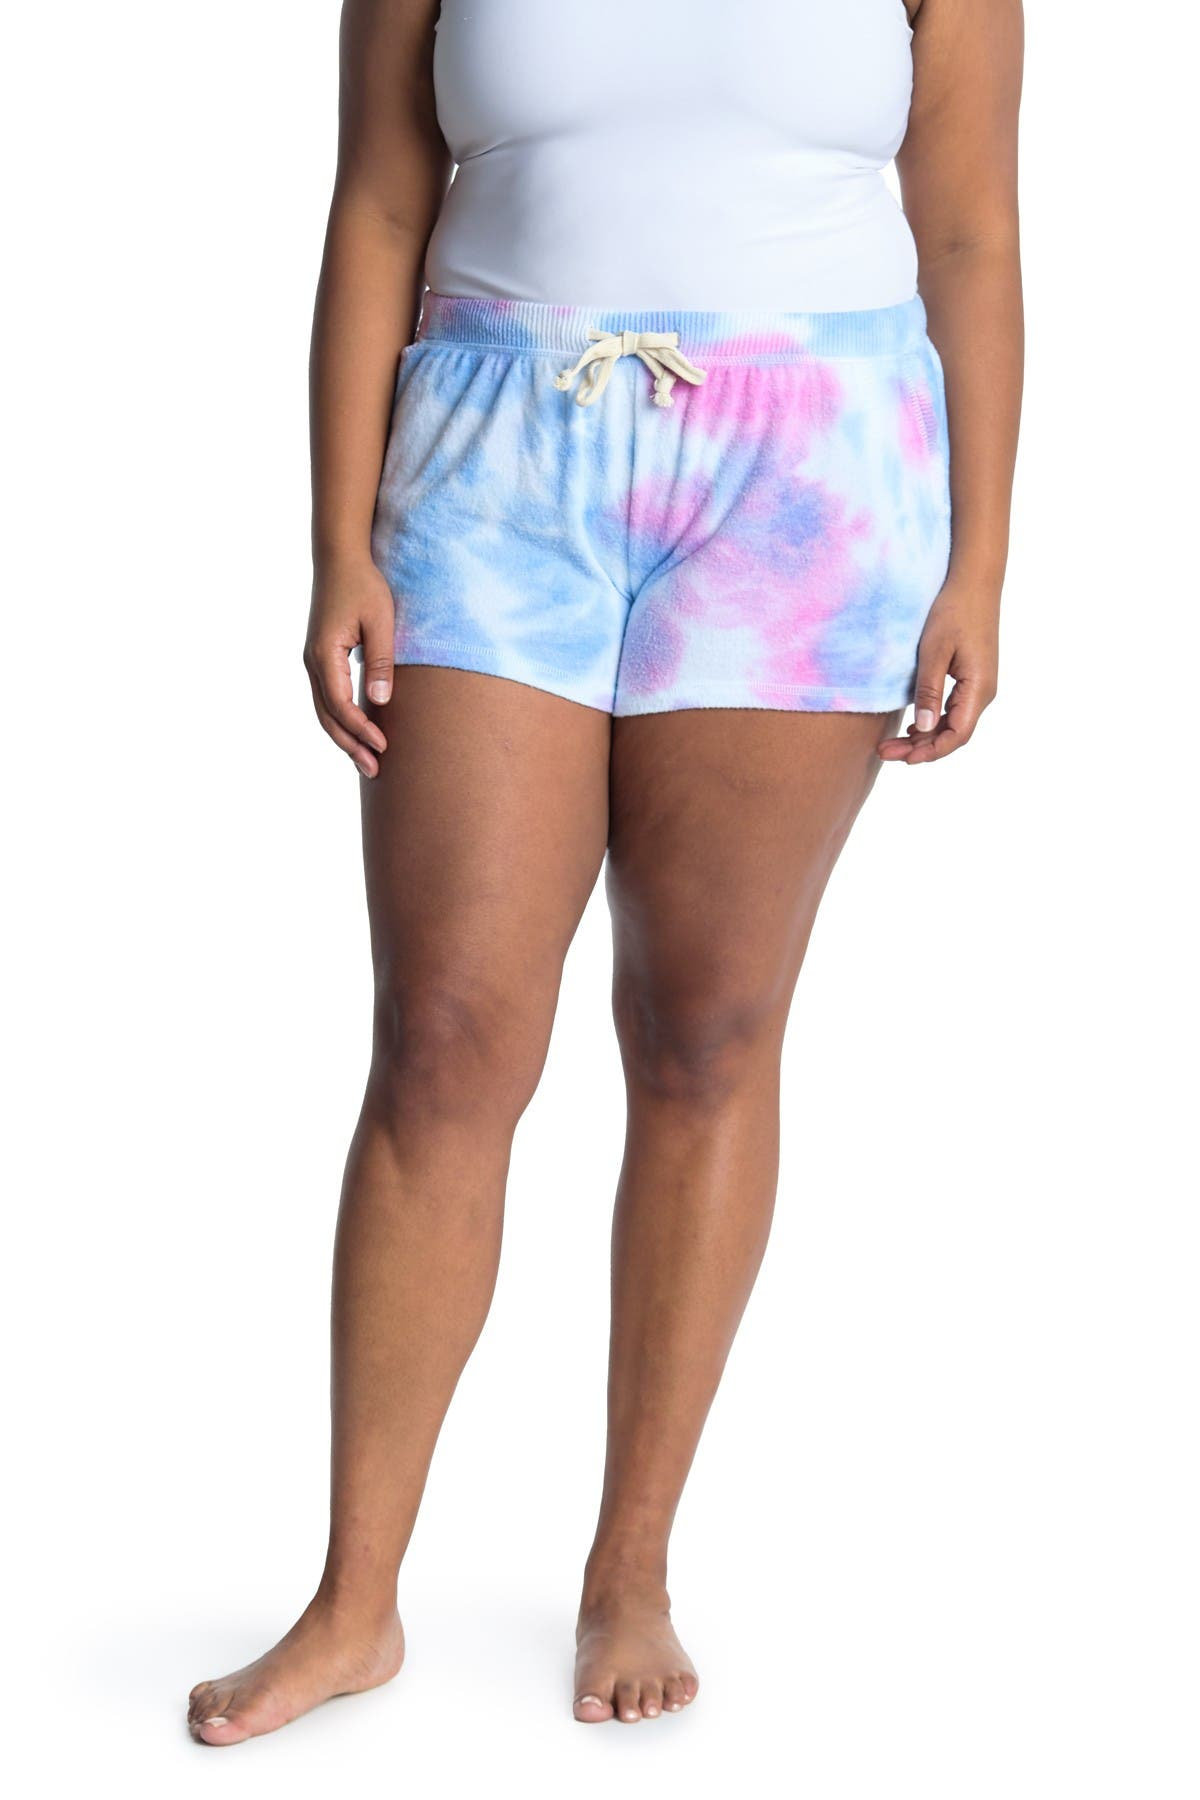 Theo and Spence Bubblegum Tie-Dye Lounge Shorts